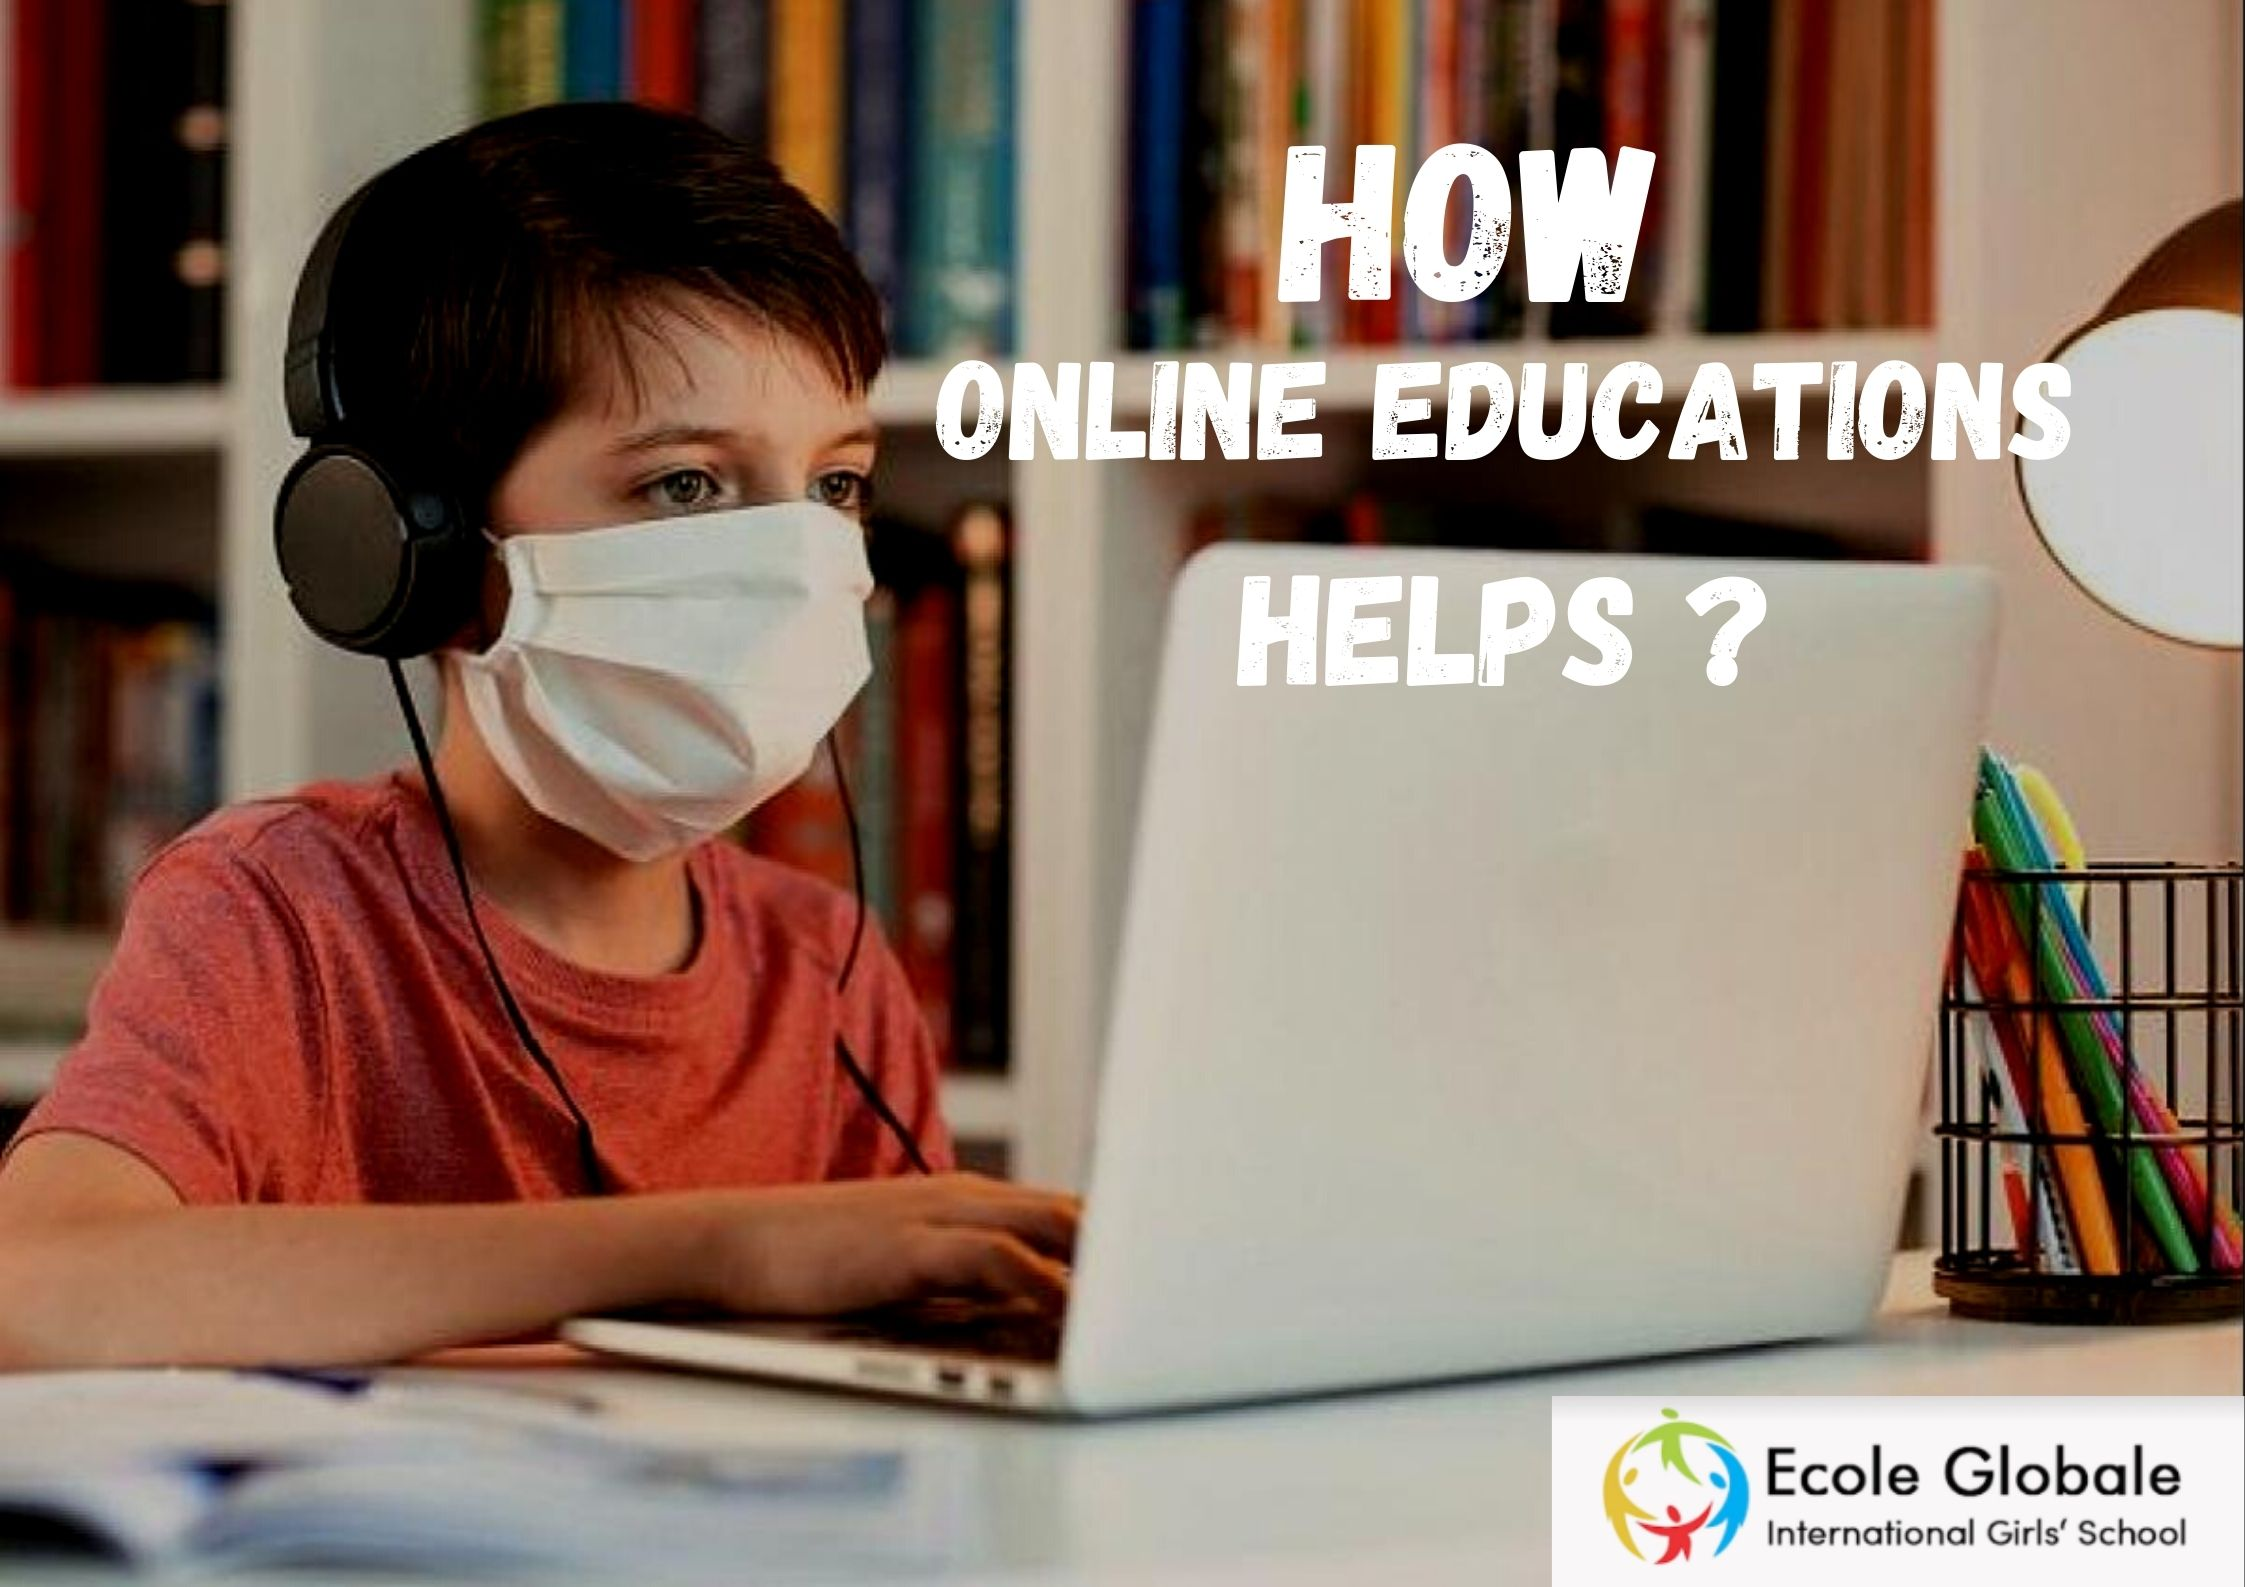 HOW ONLINE EDUCATION HELPED THE STUDENTS DURING COVID-19